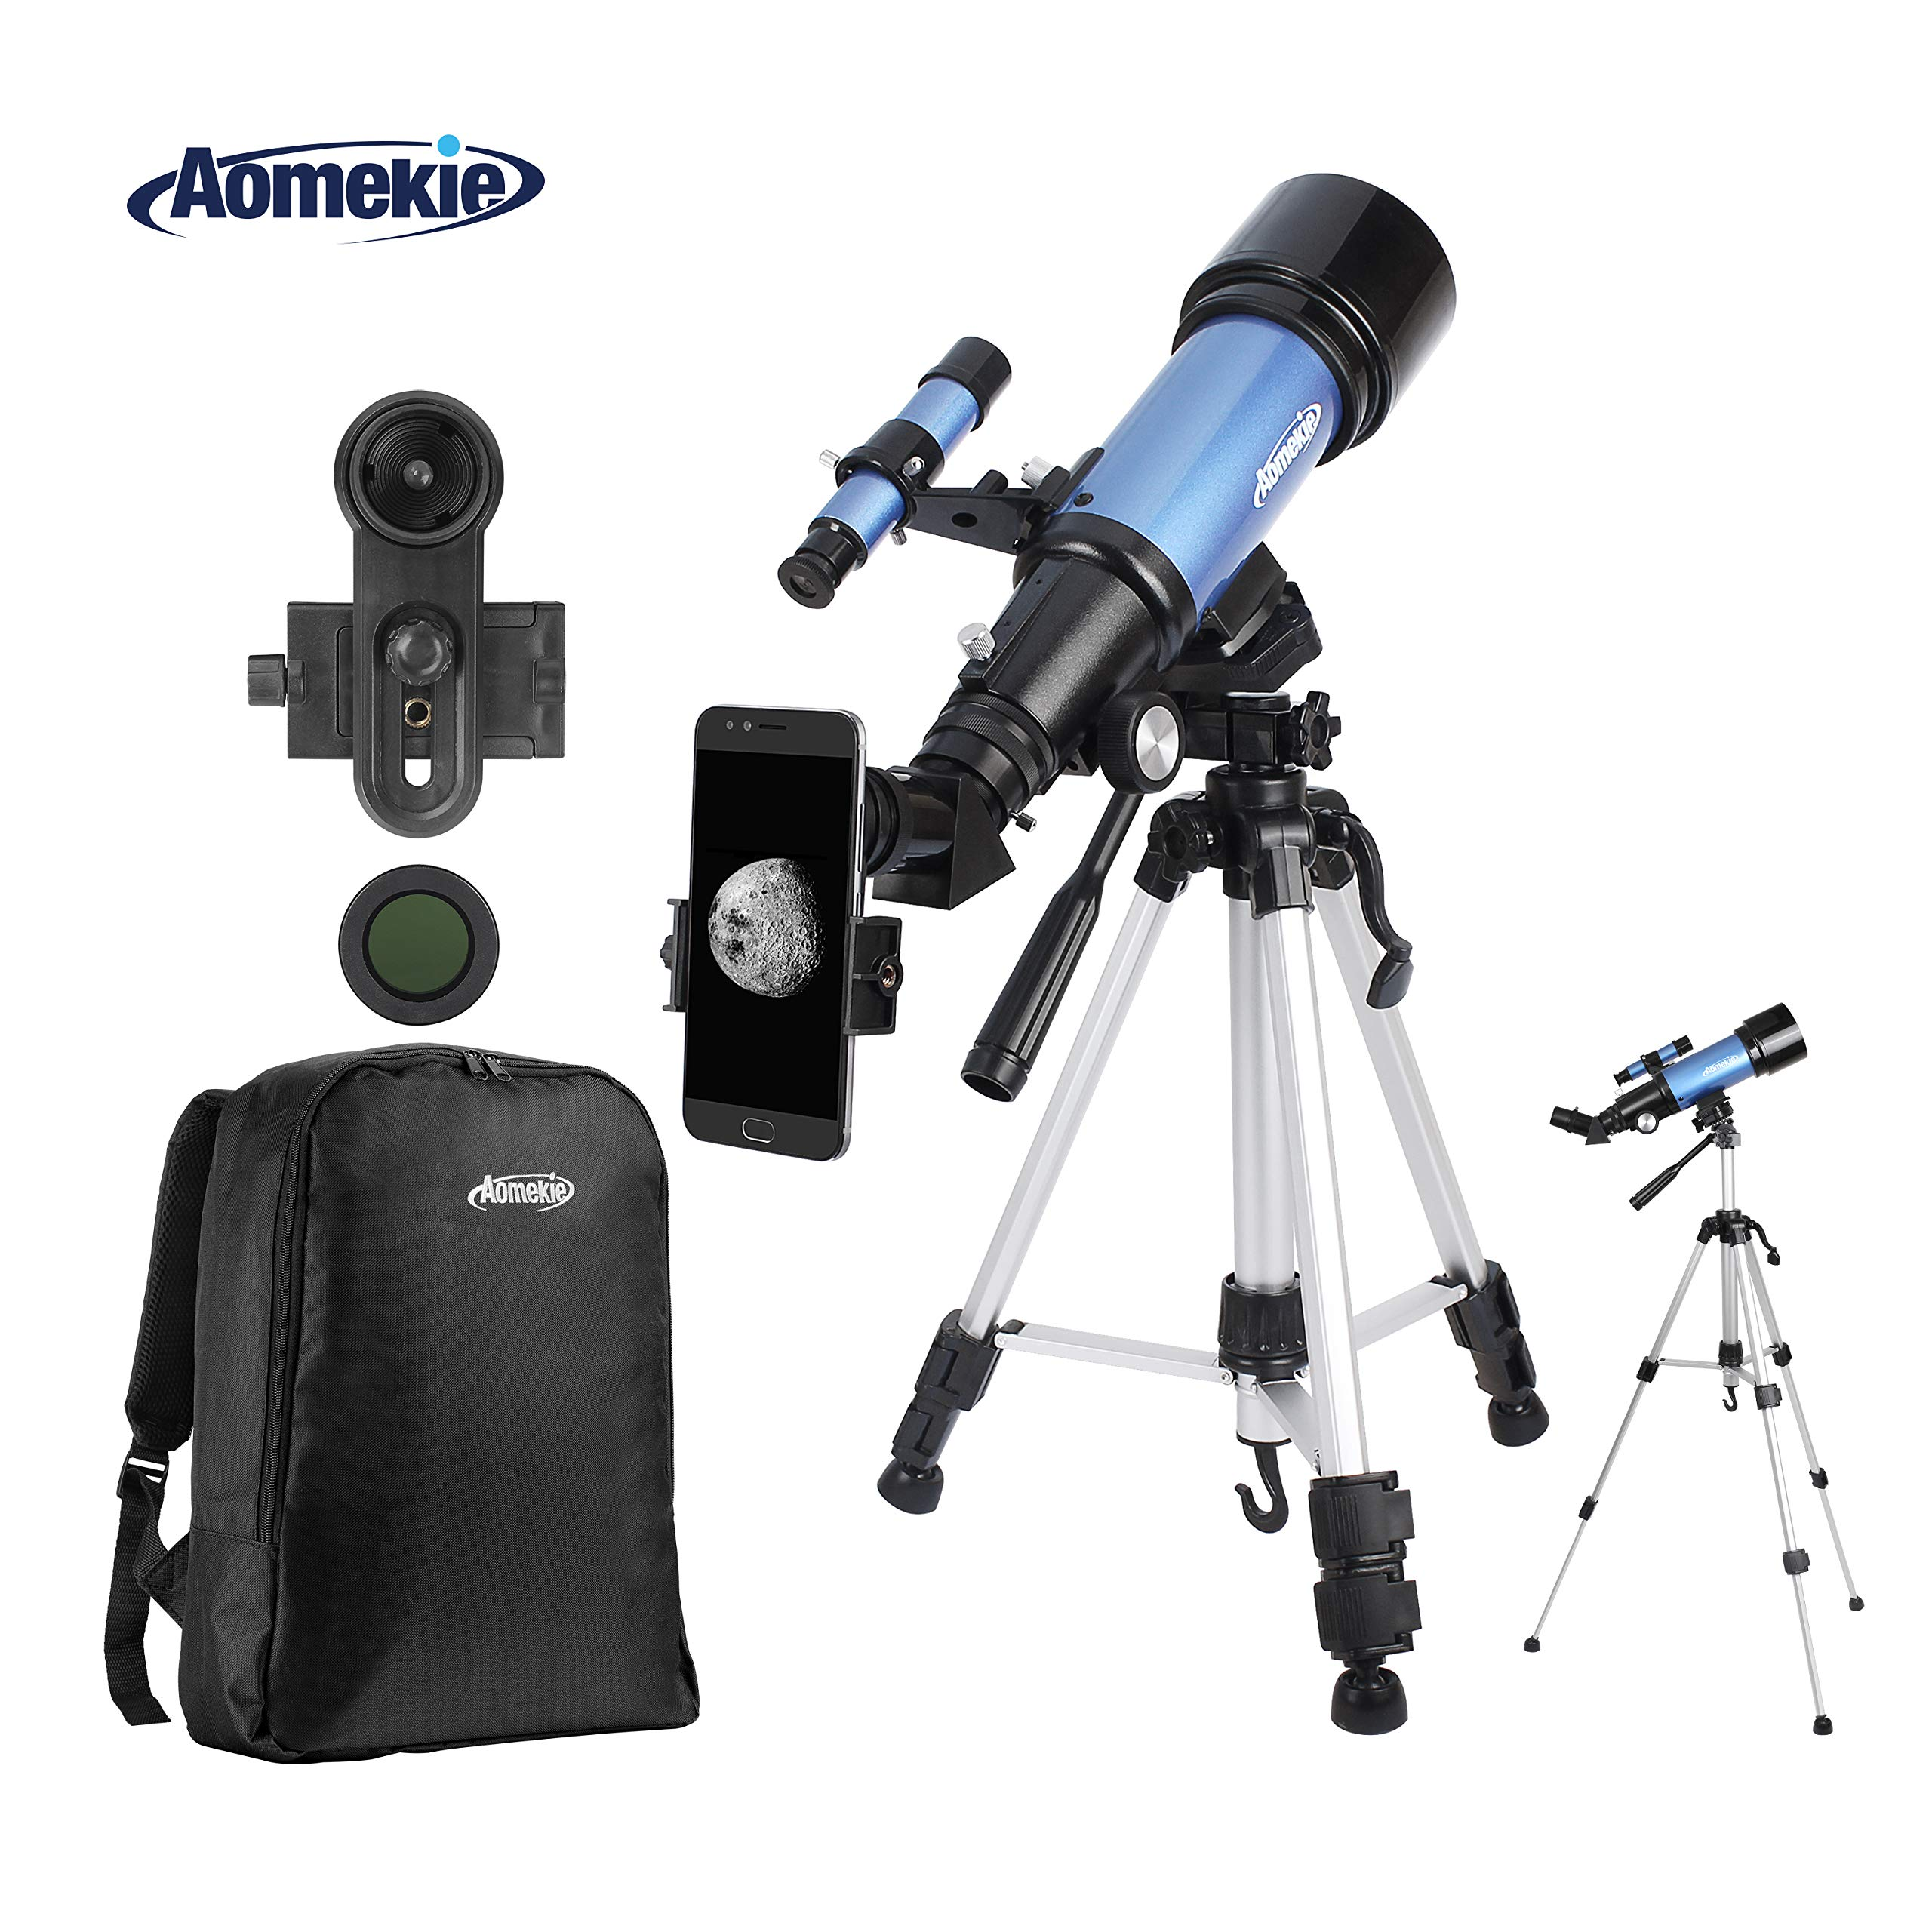 Aomekie Telescope for Adults Kids Astronomy Beginners 70mm Refractor Telescopes with Adjustable Tripod 10X Phone Adapter Finderscope 3X Barlow Lens and Backpack by AOMEKIE